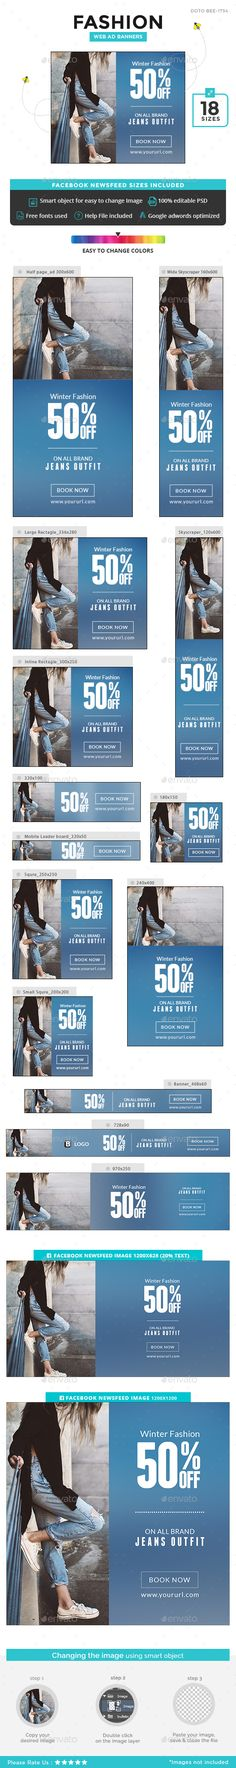 Fashion Sale Banners  — PSD Template #gif banner #clothing • Download ➝ https://graphicriver.net/item/fashion-sale-banners/18416423?ref=pxcr